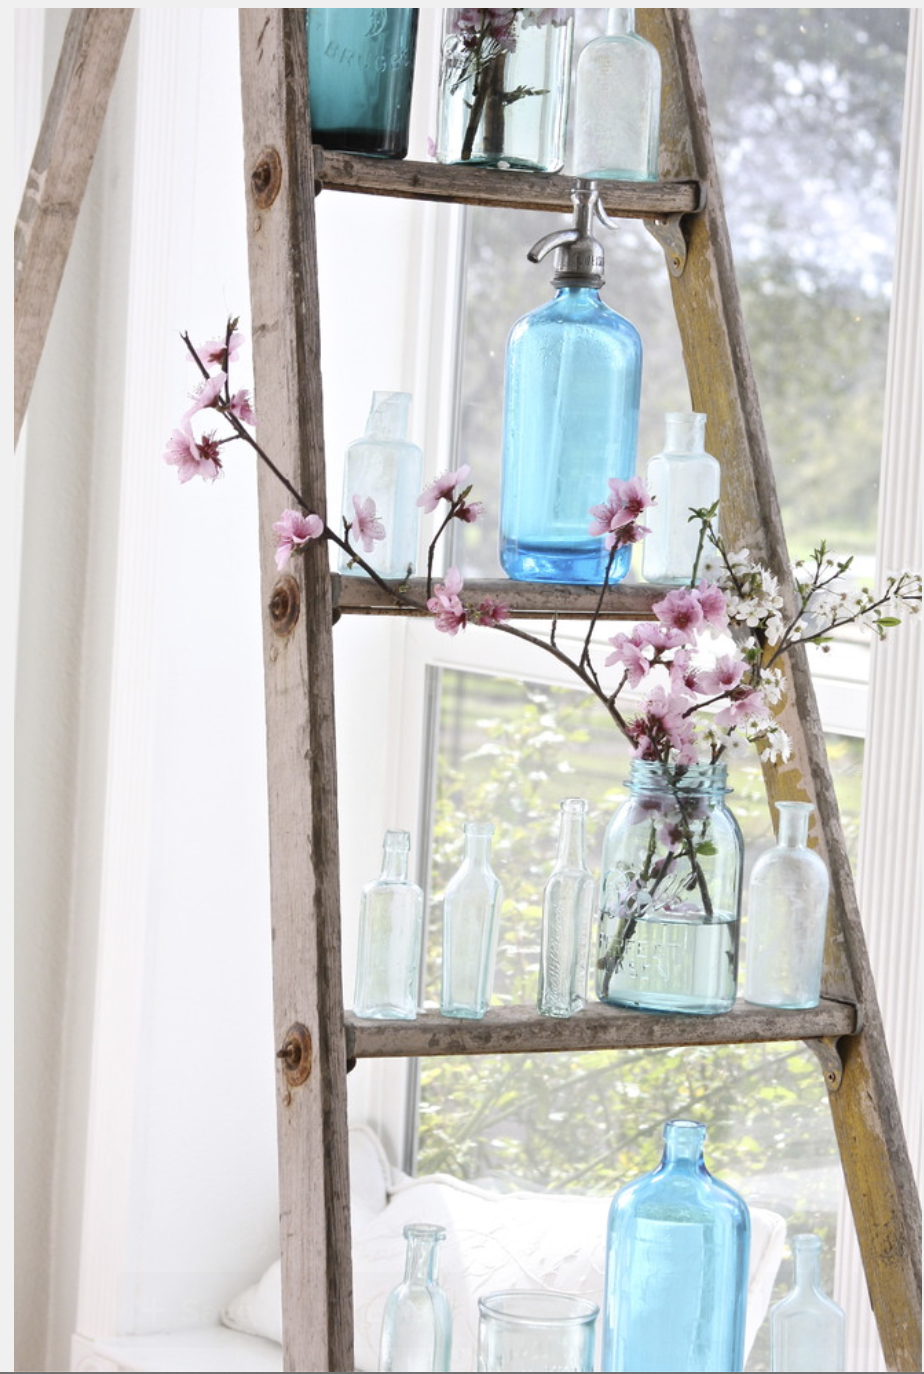 These apothecary bottles are perfect on their own or to house some simple buds for an additional splash of color.  {Via Houzz}